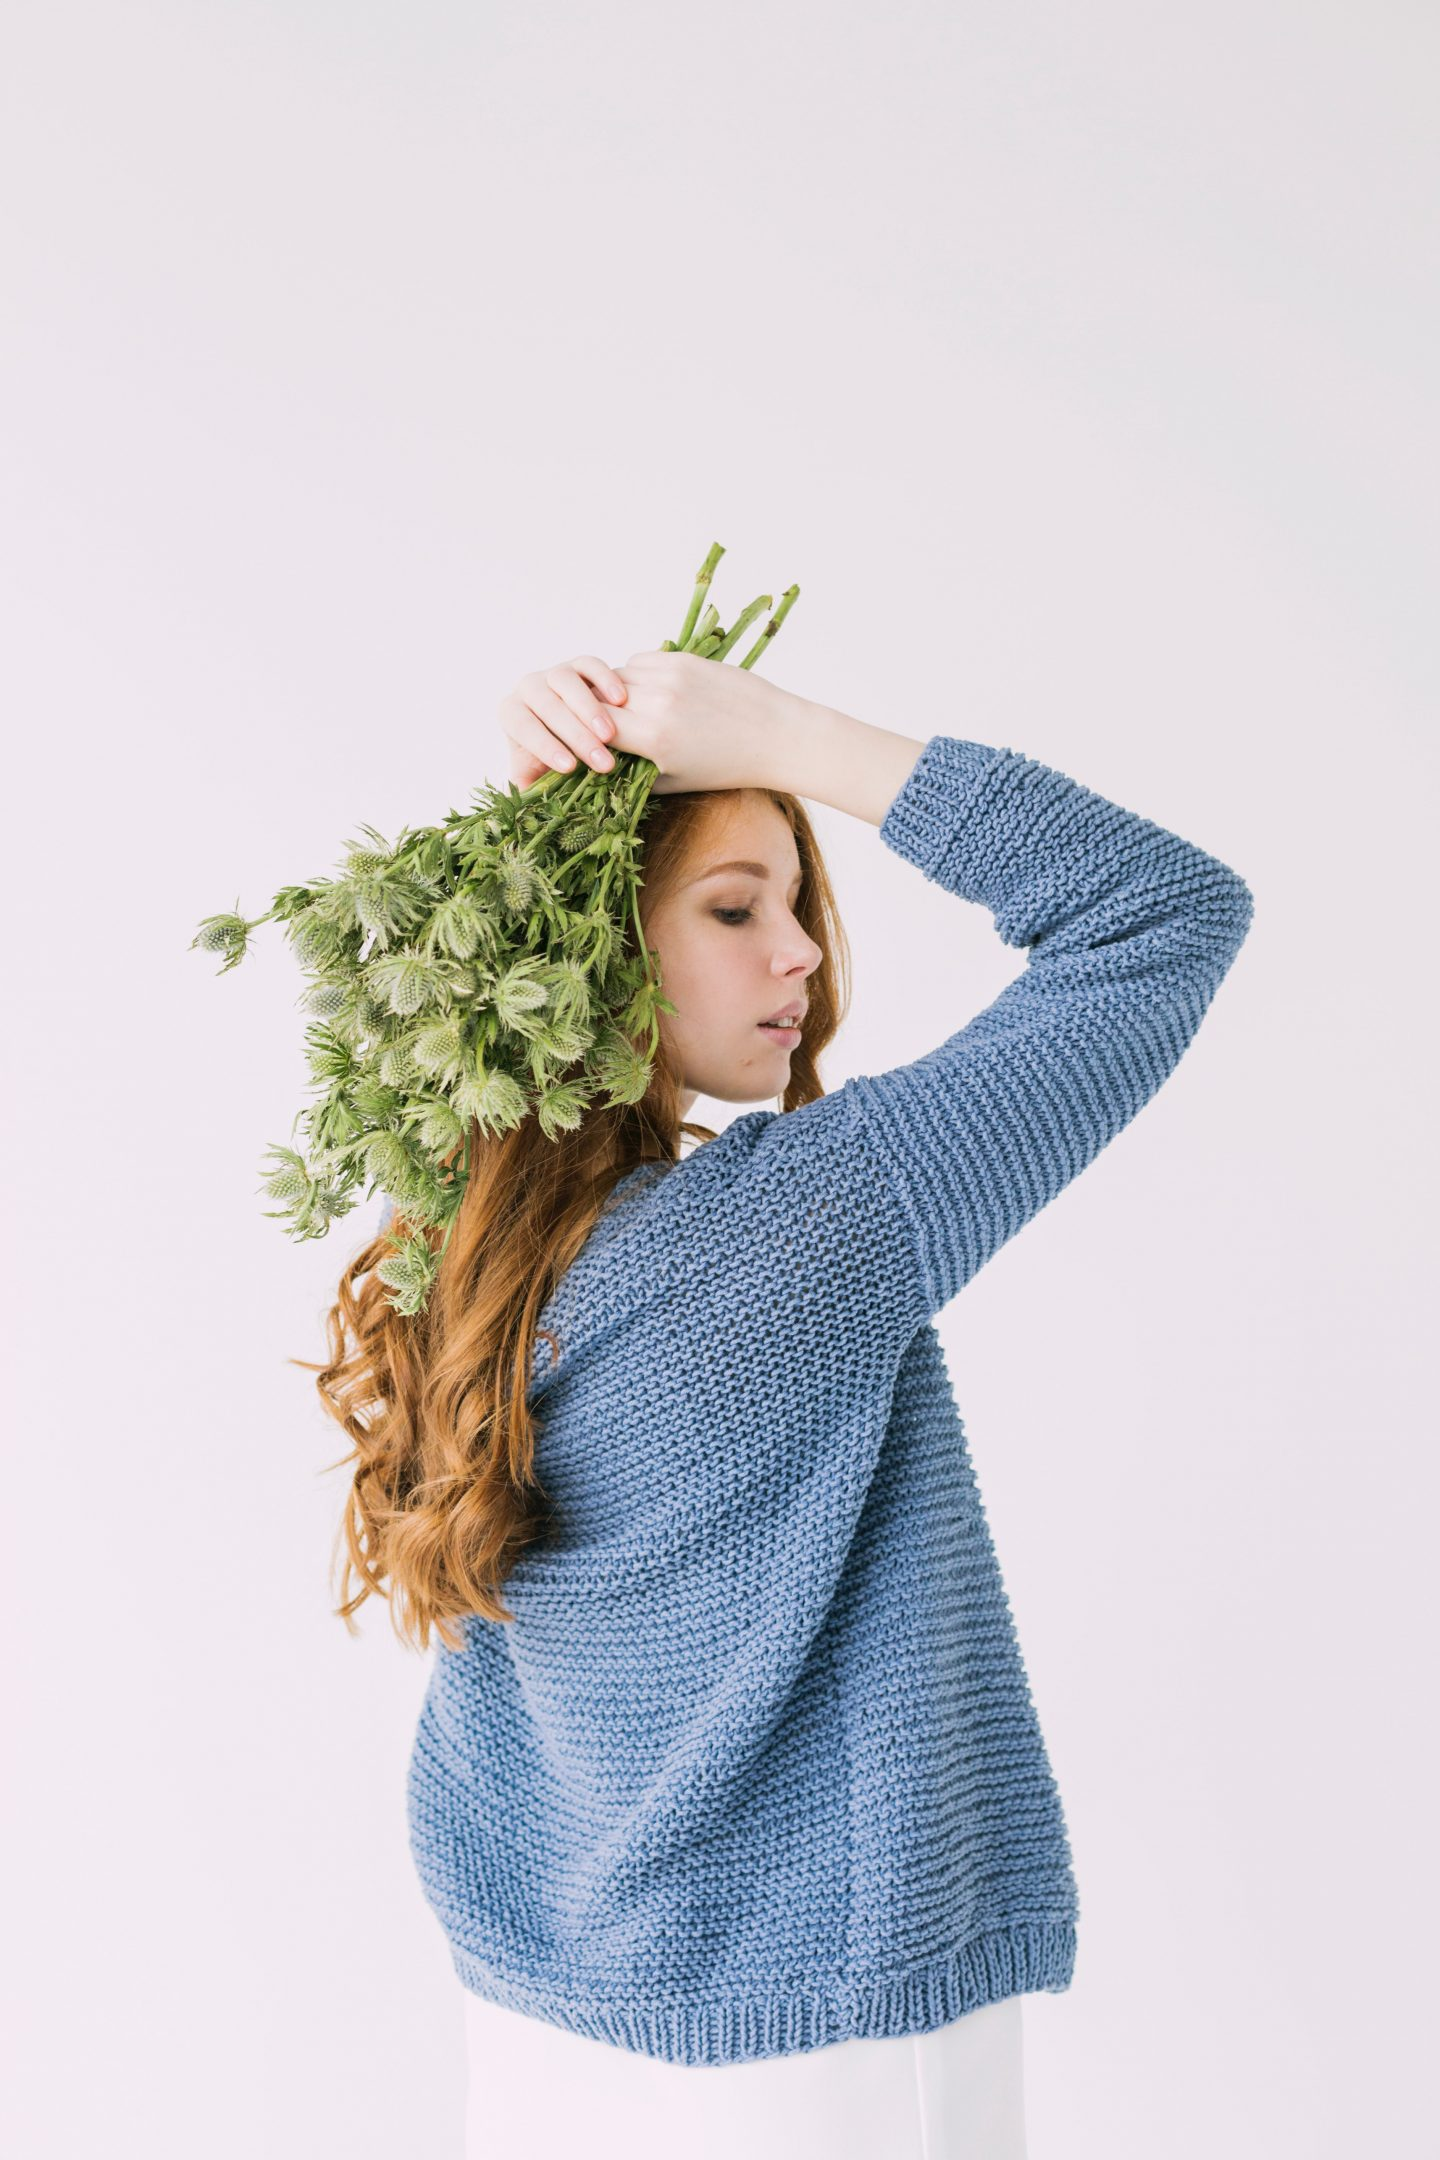 Sustainable clothing brands that use recycled materials